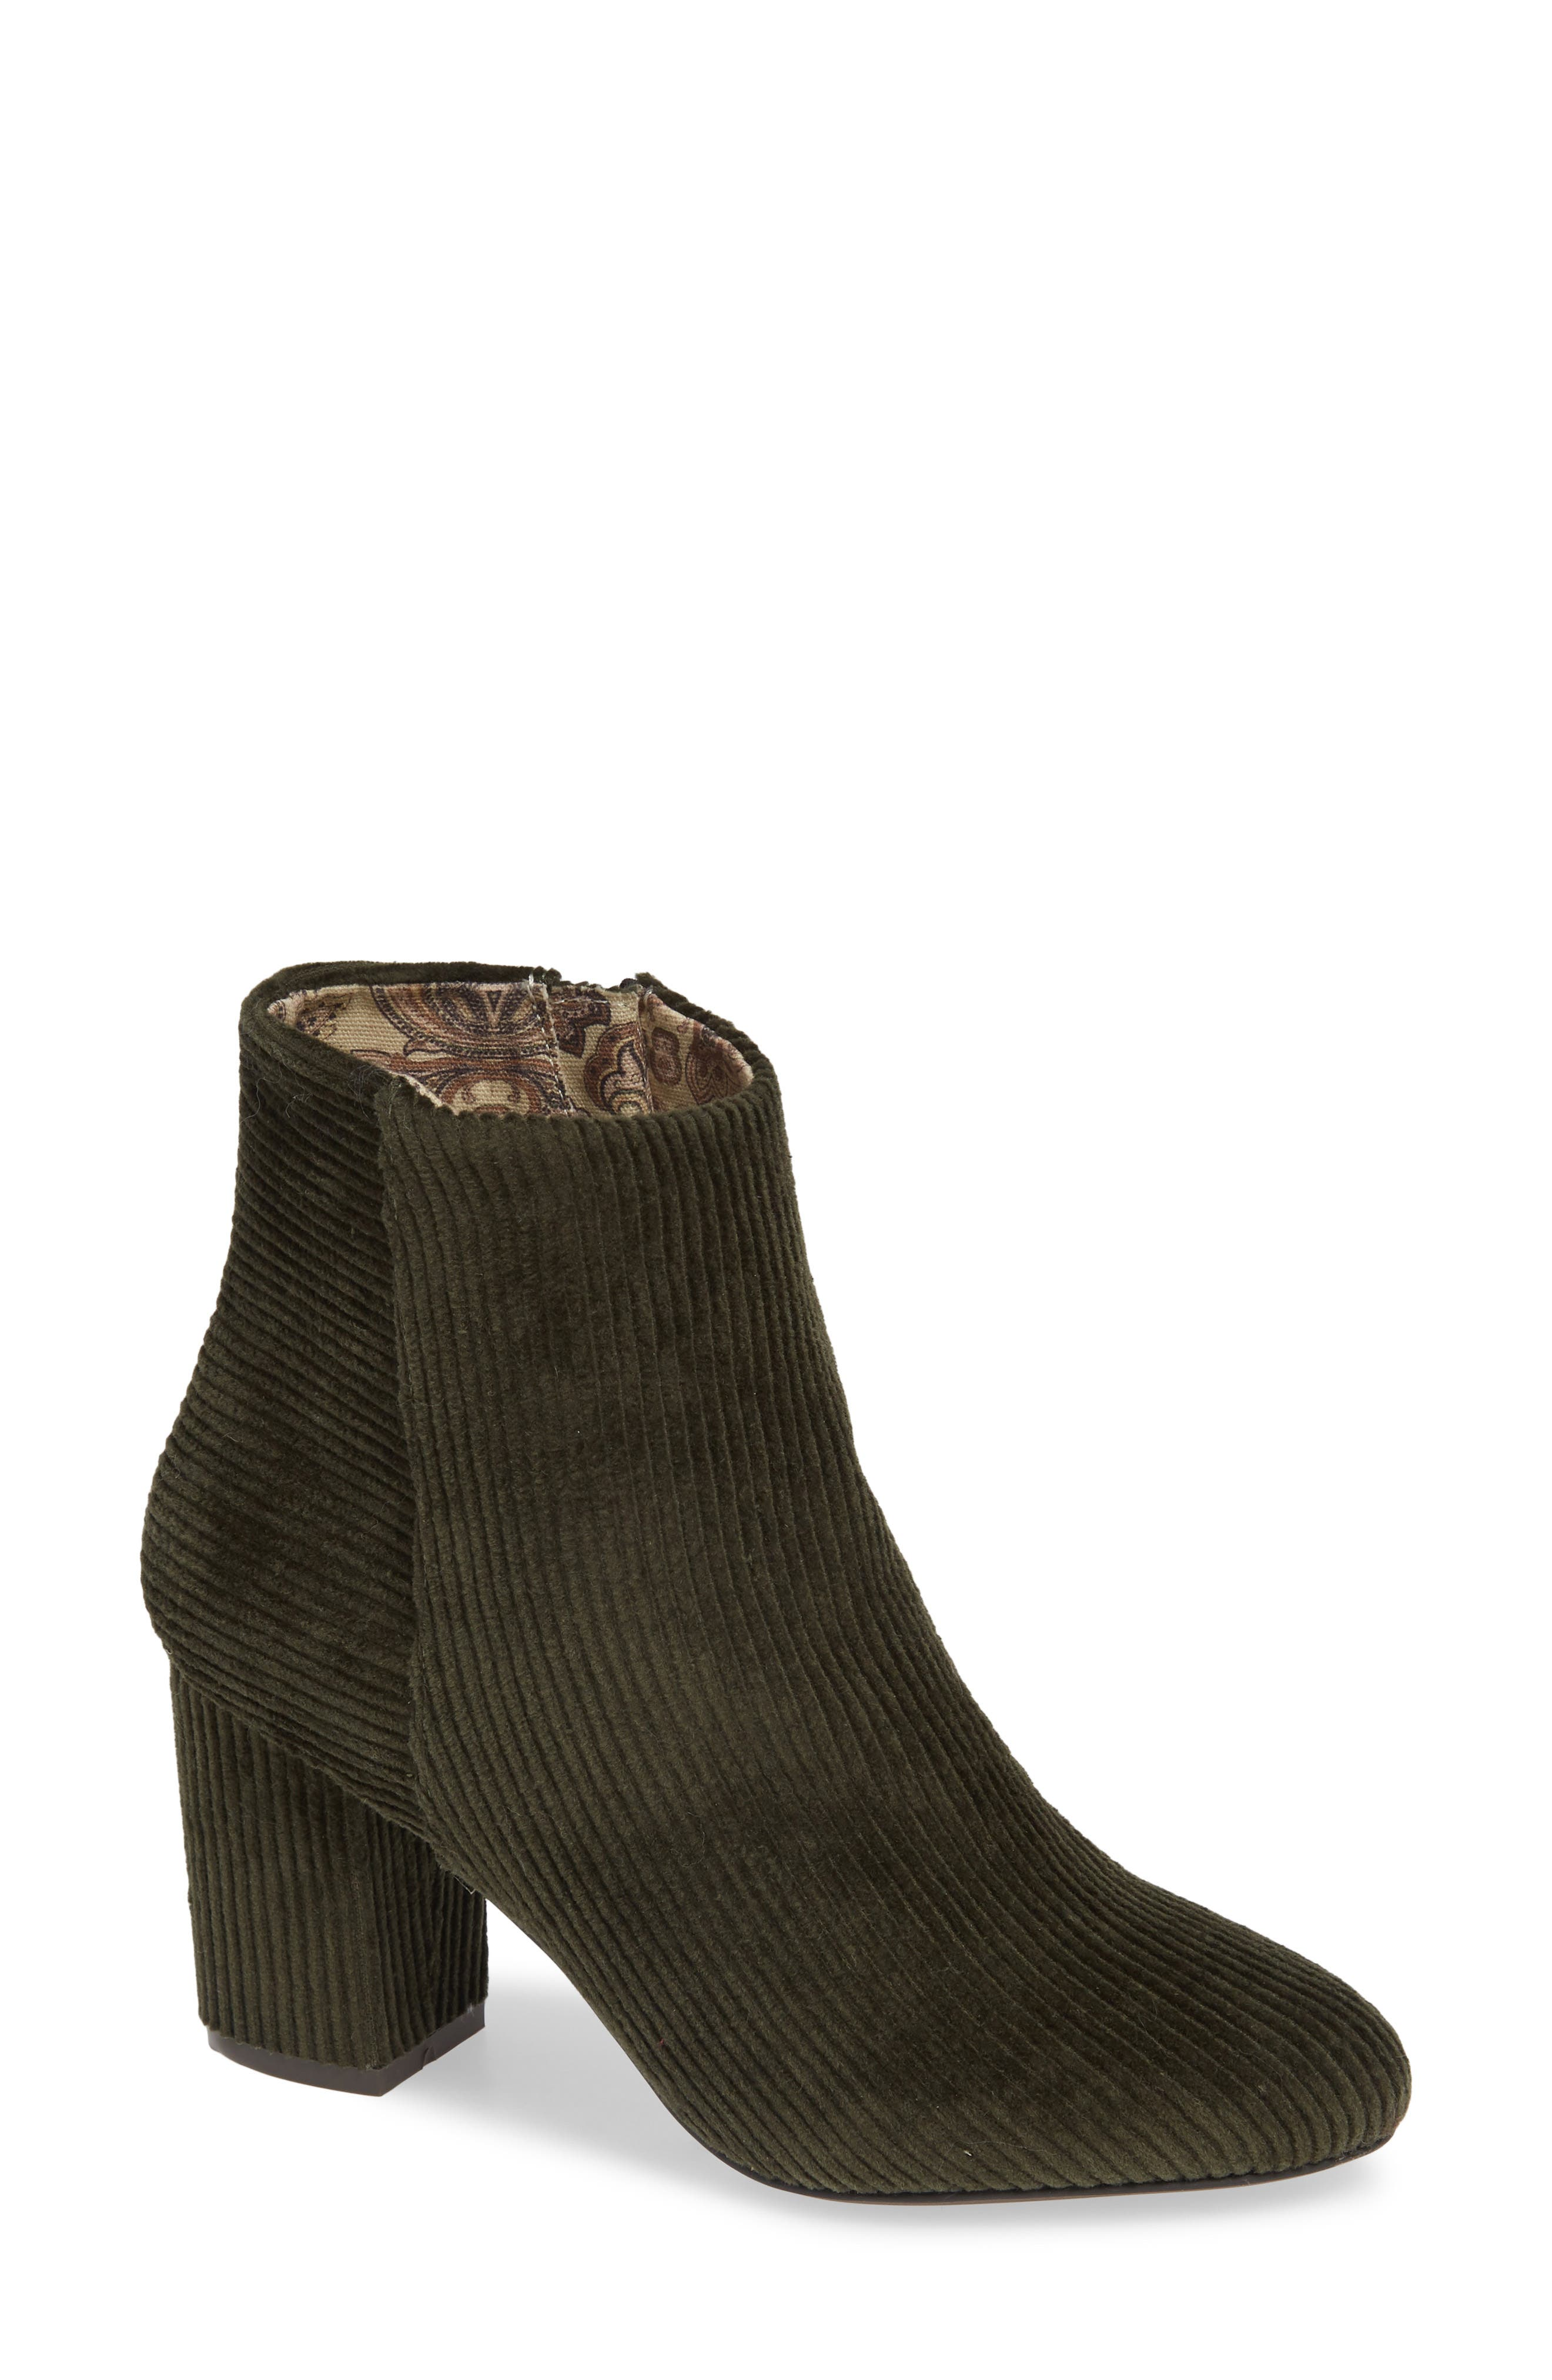 BAND OF GYPSIES Andrea Bootie in Forest Green Corduroy